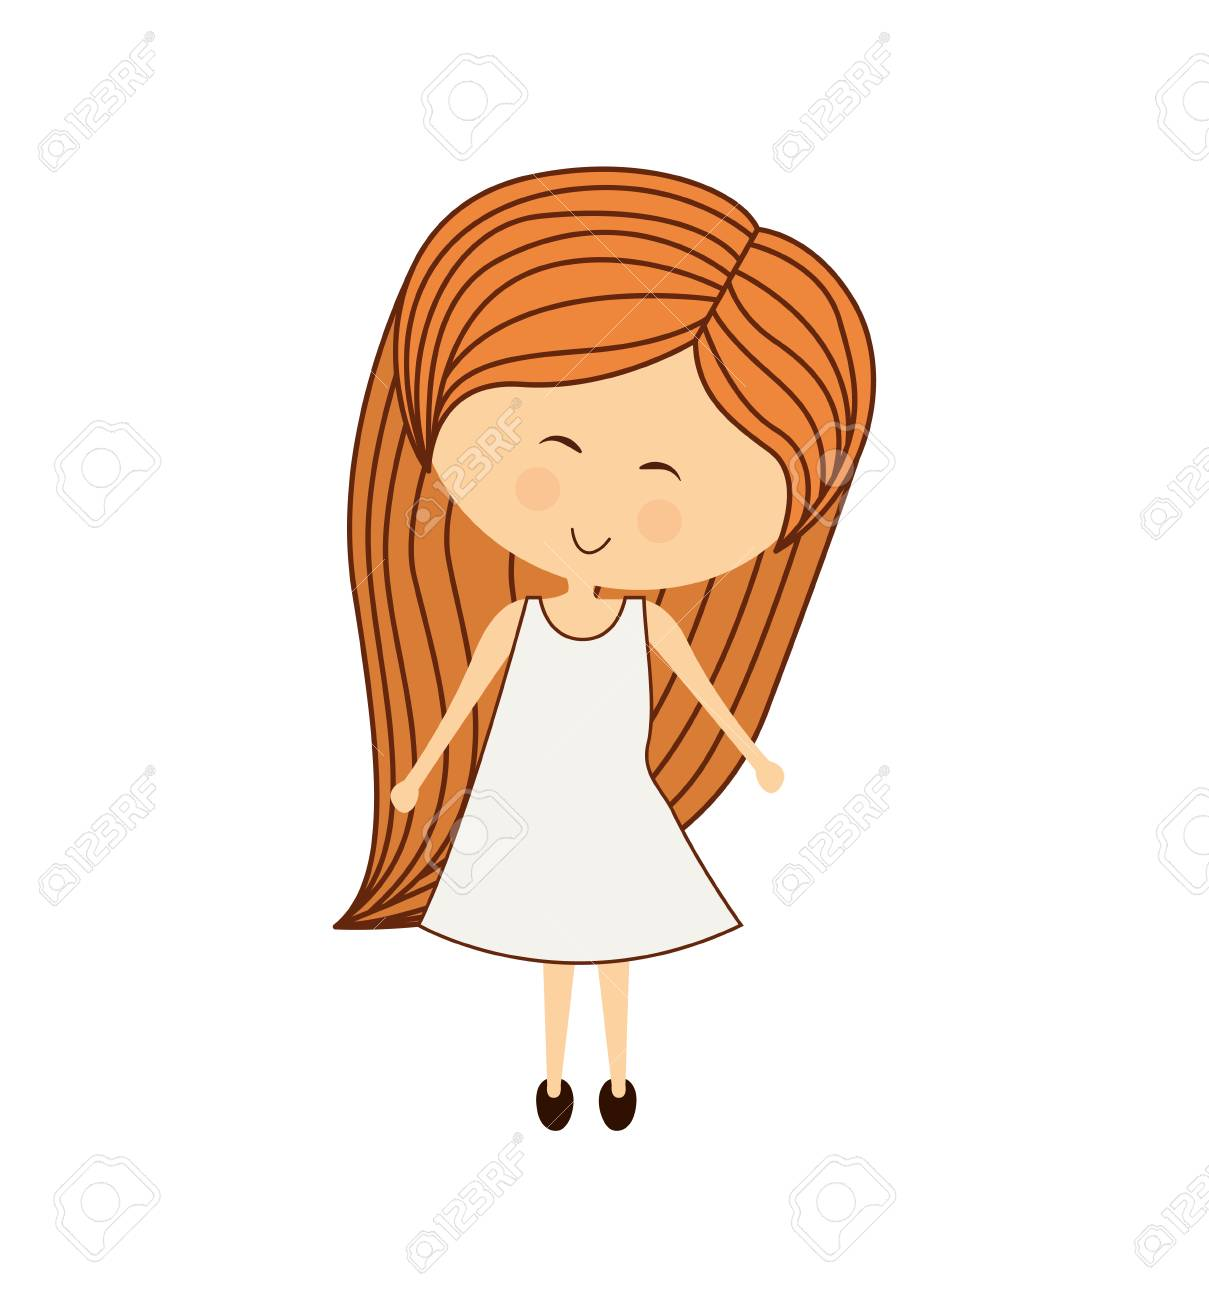 Woman Clipart long hair 1.